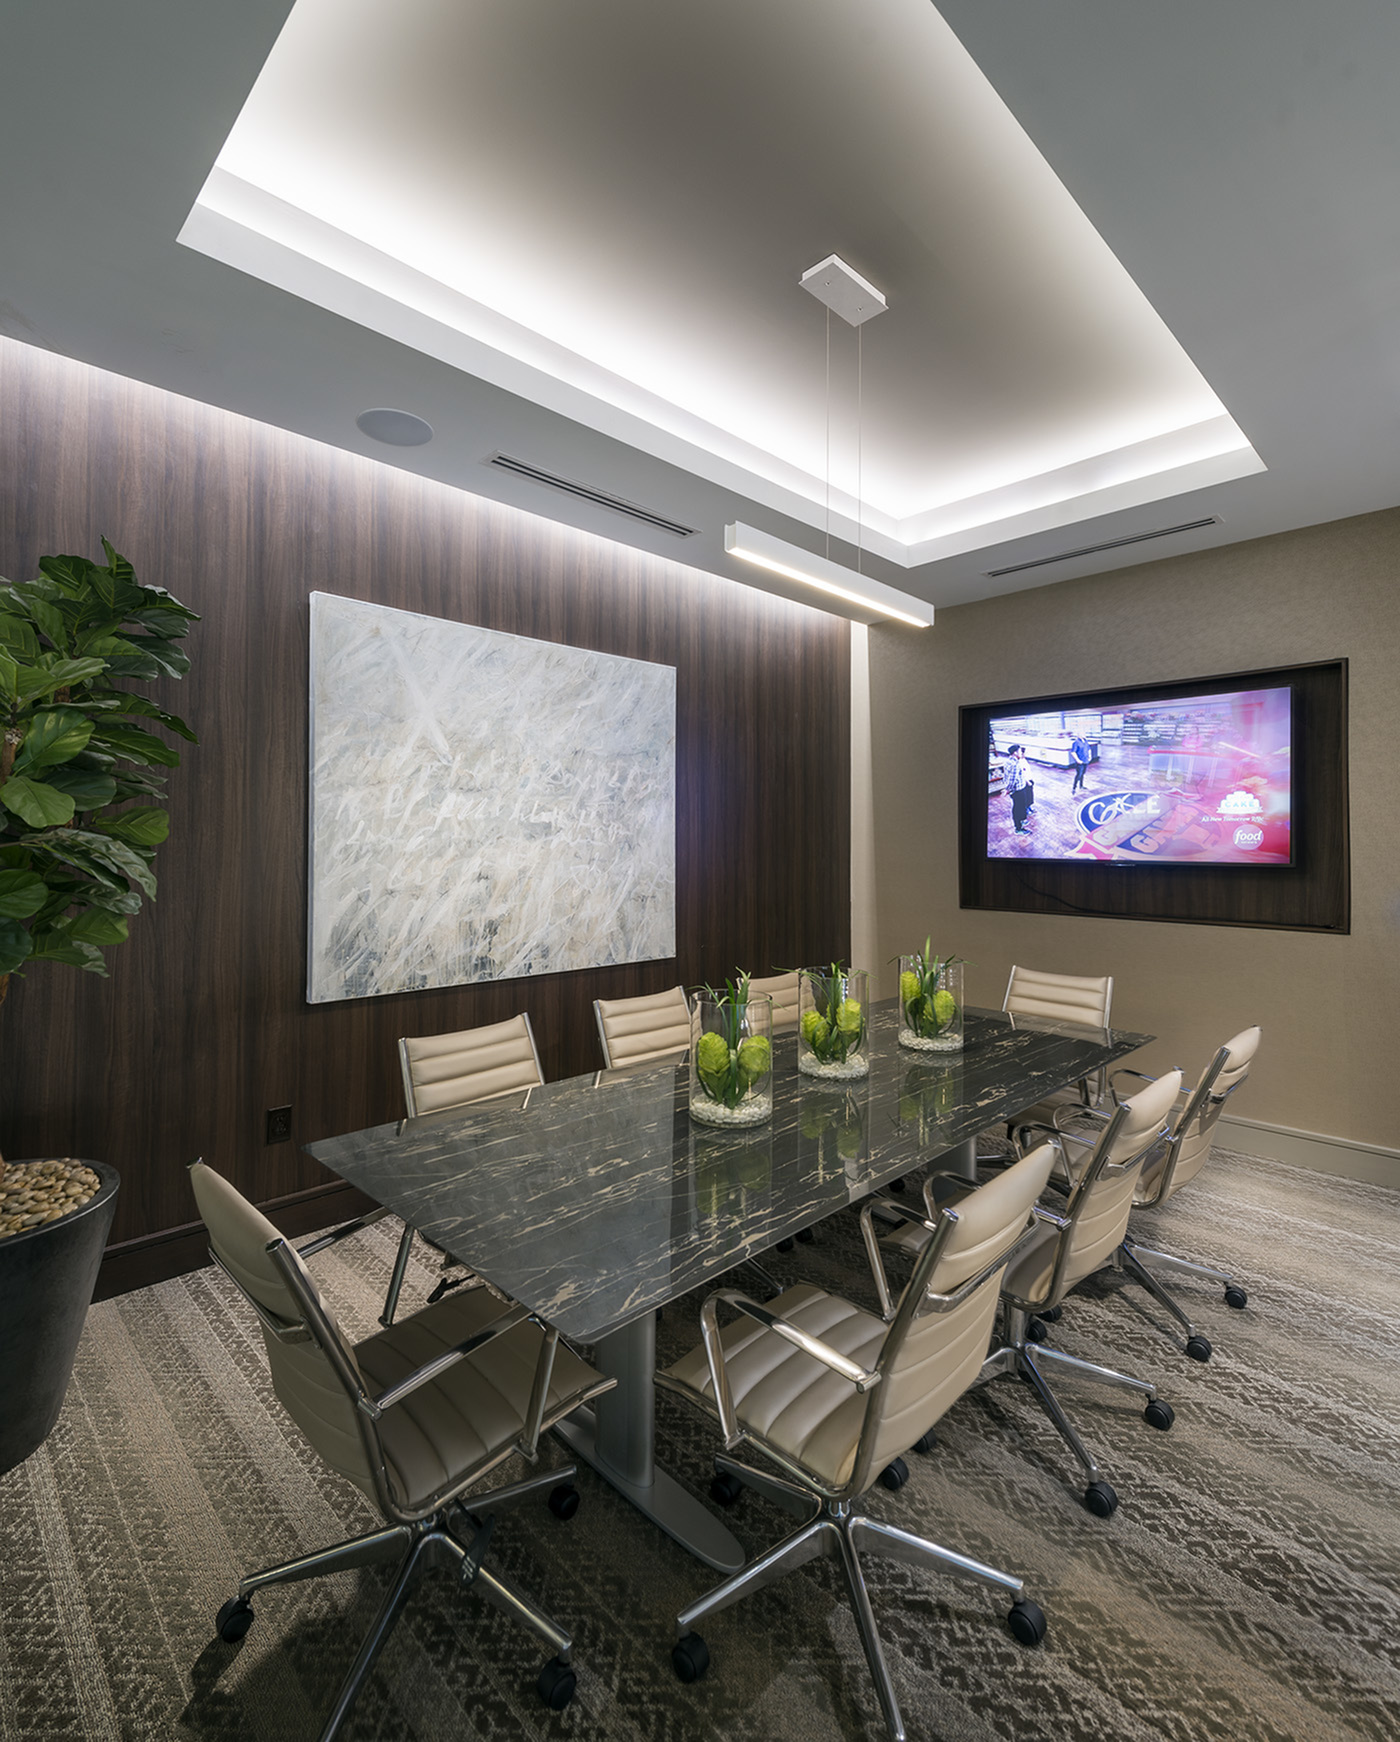 Image of Executive conference room with presentation capabilities for Hanover Perimeter